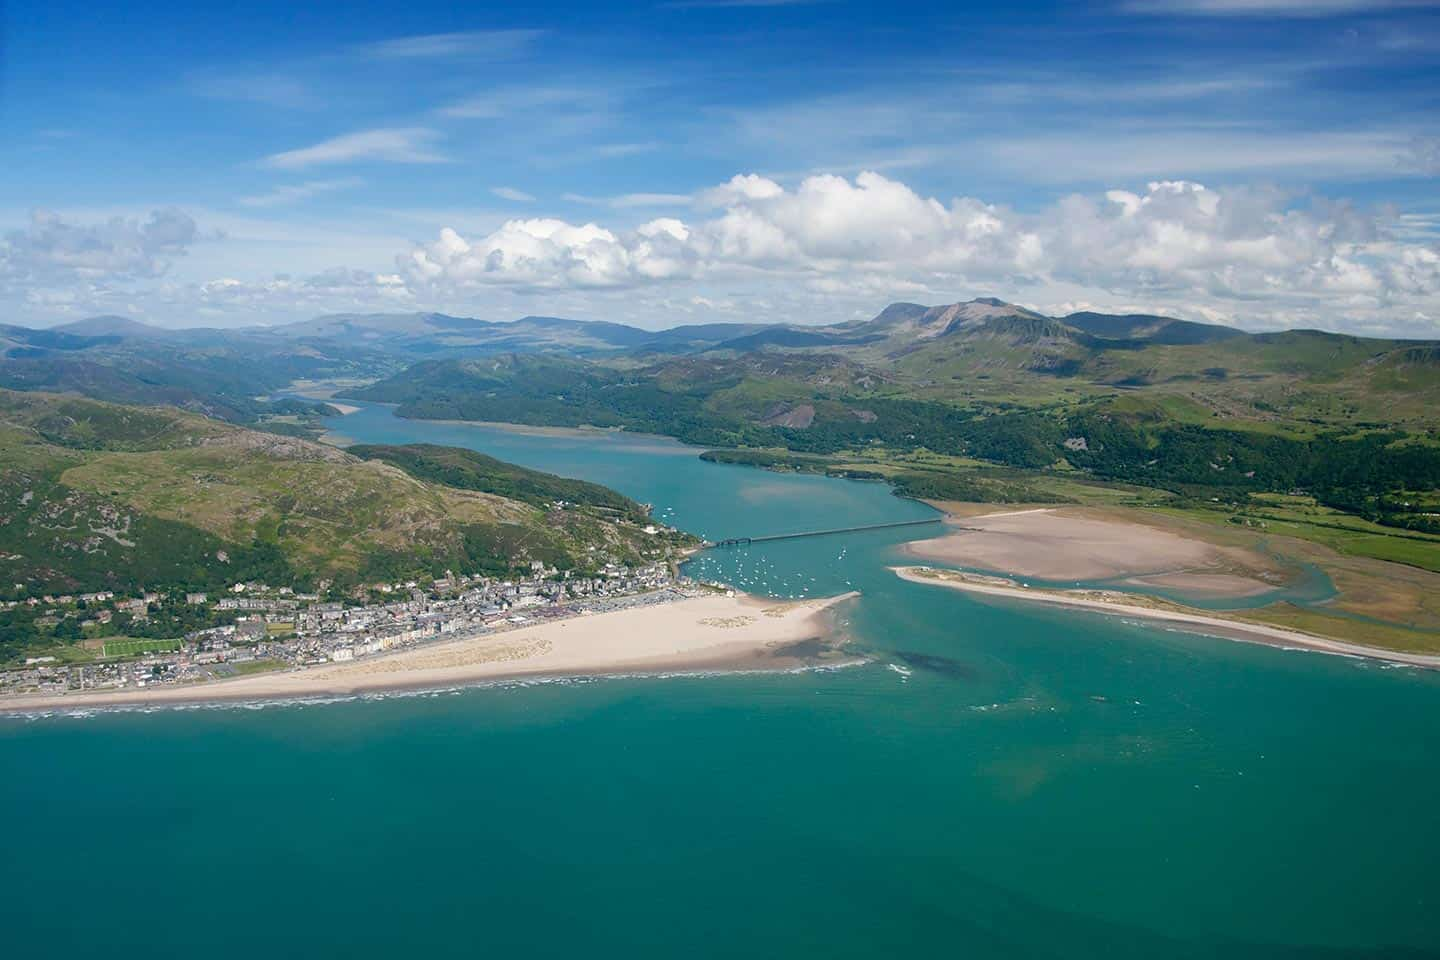 Image of Barmouth and the Mawddach estuary, Wales